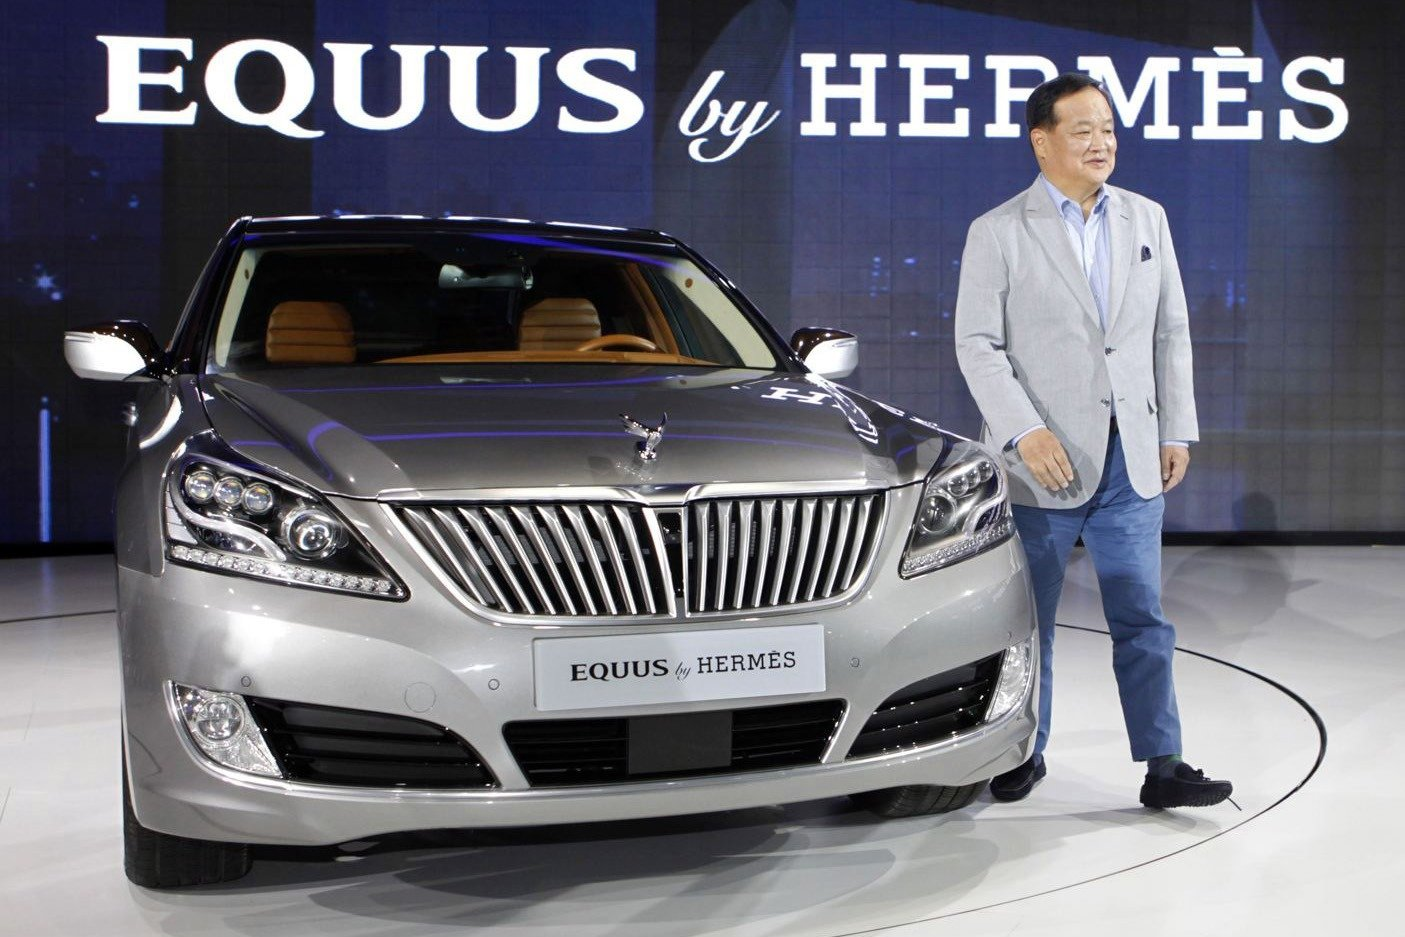 Hermes Designs A Special Edition Equus Stretch Limo For